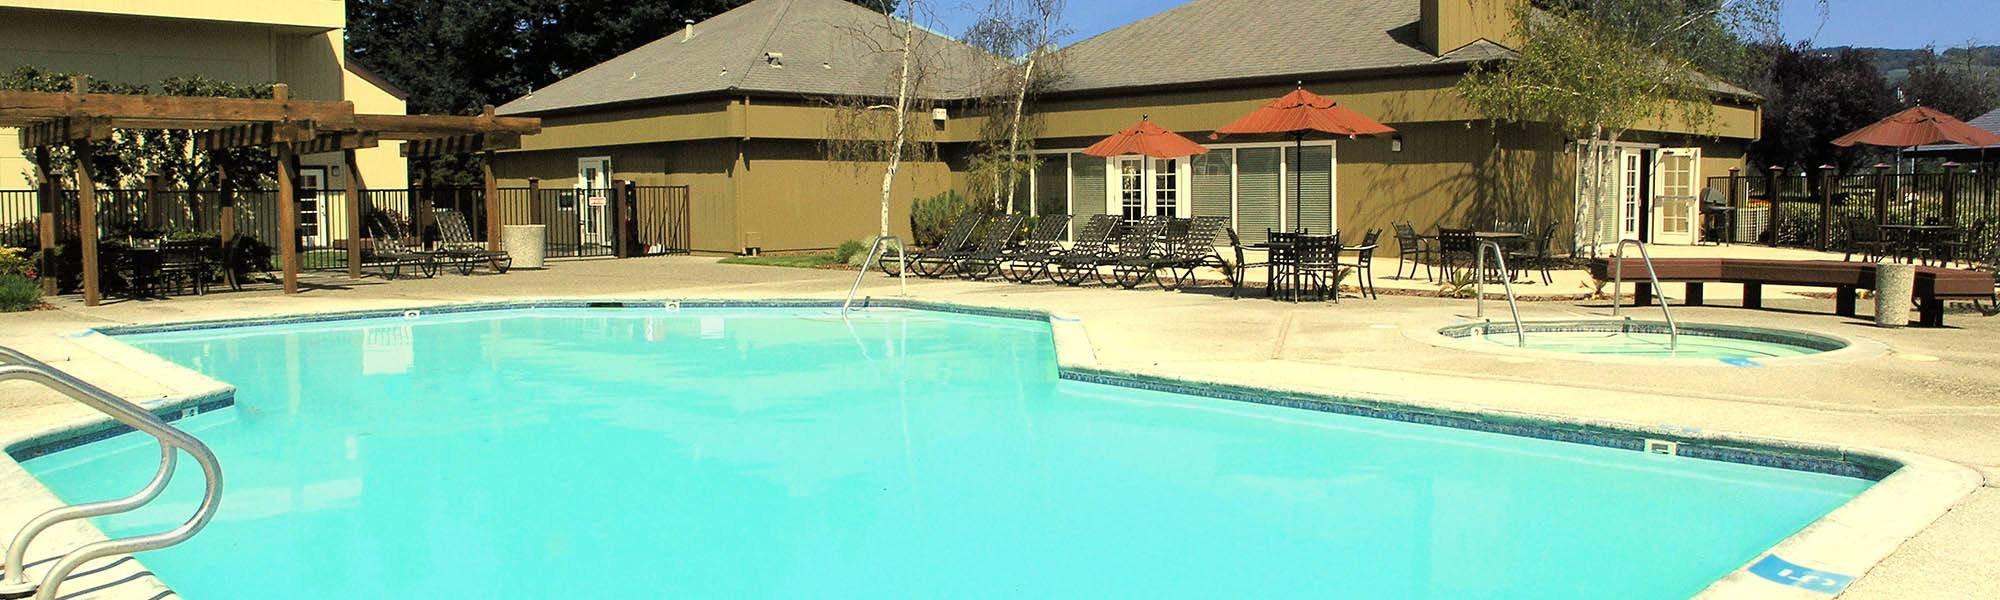 See what we have to offer by visiting Park Ridge Apartment Homes's amenities page.